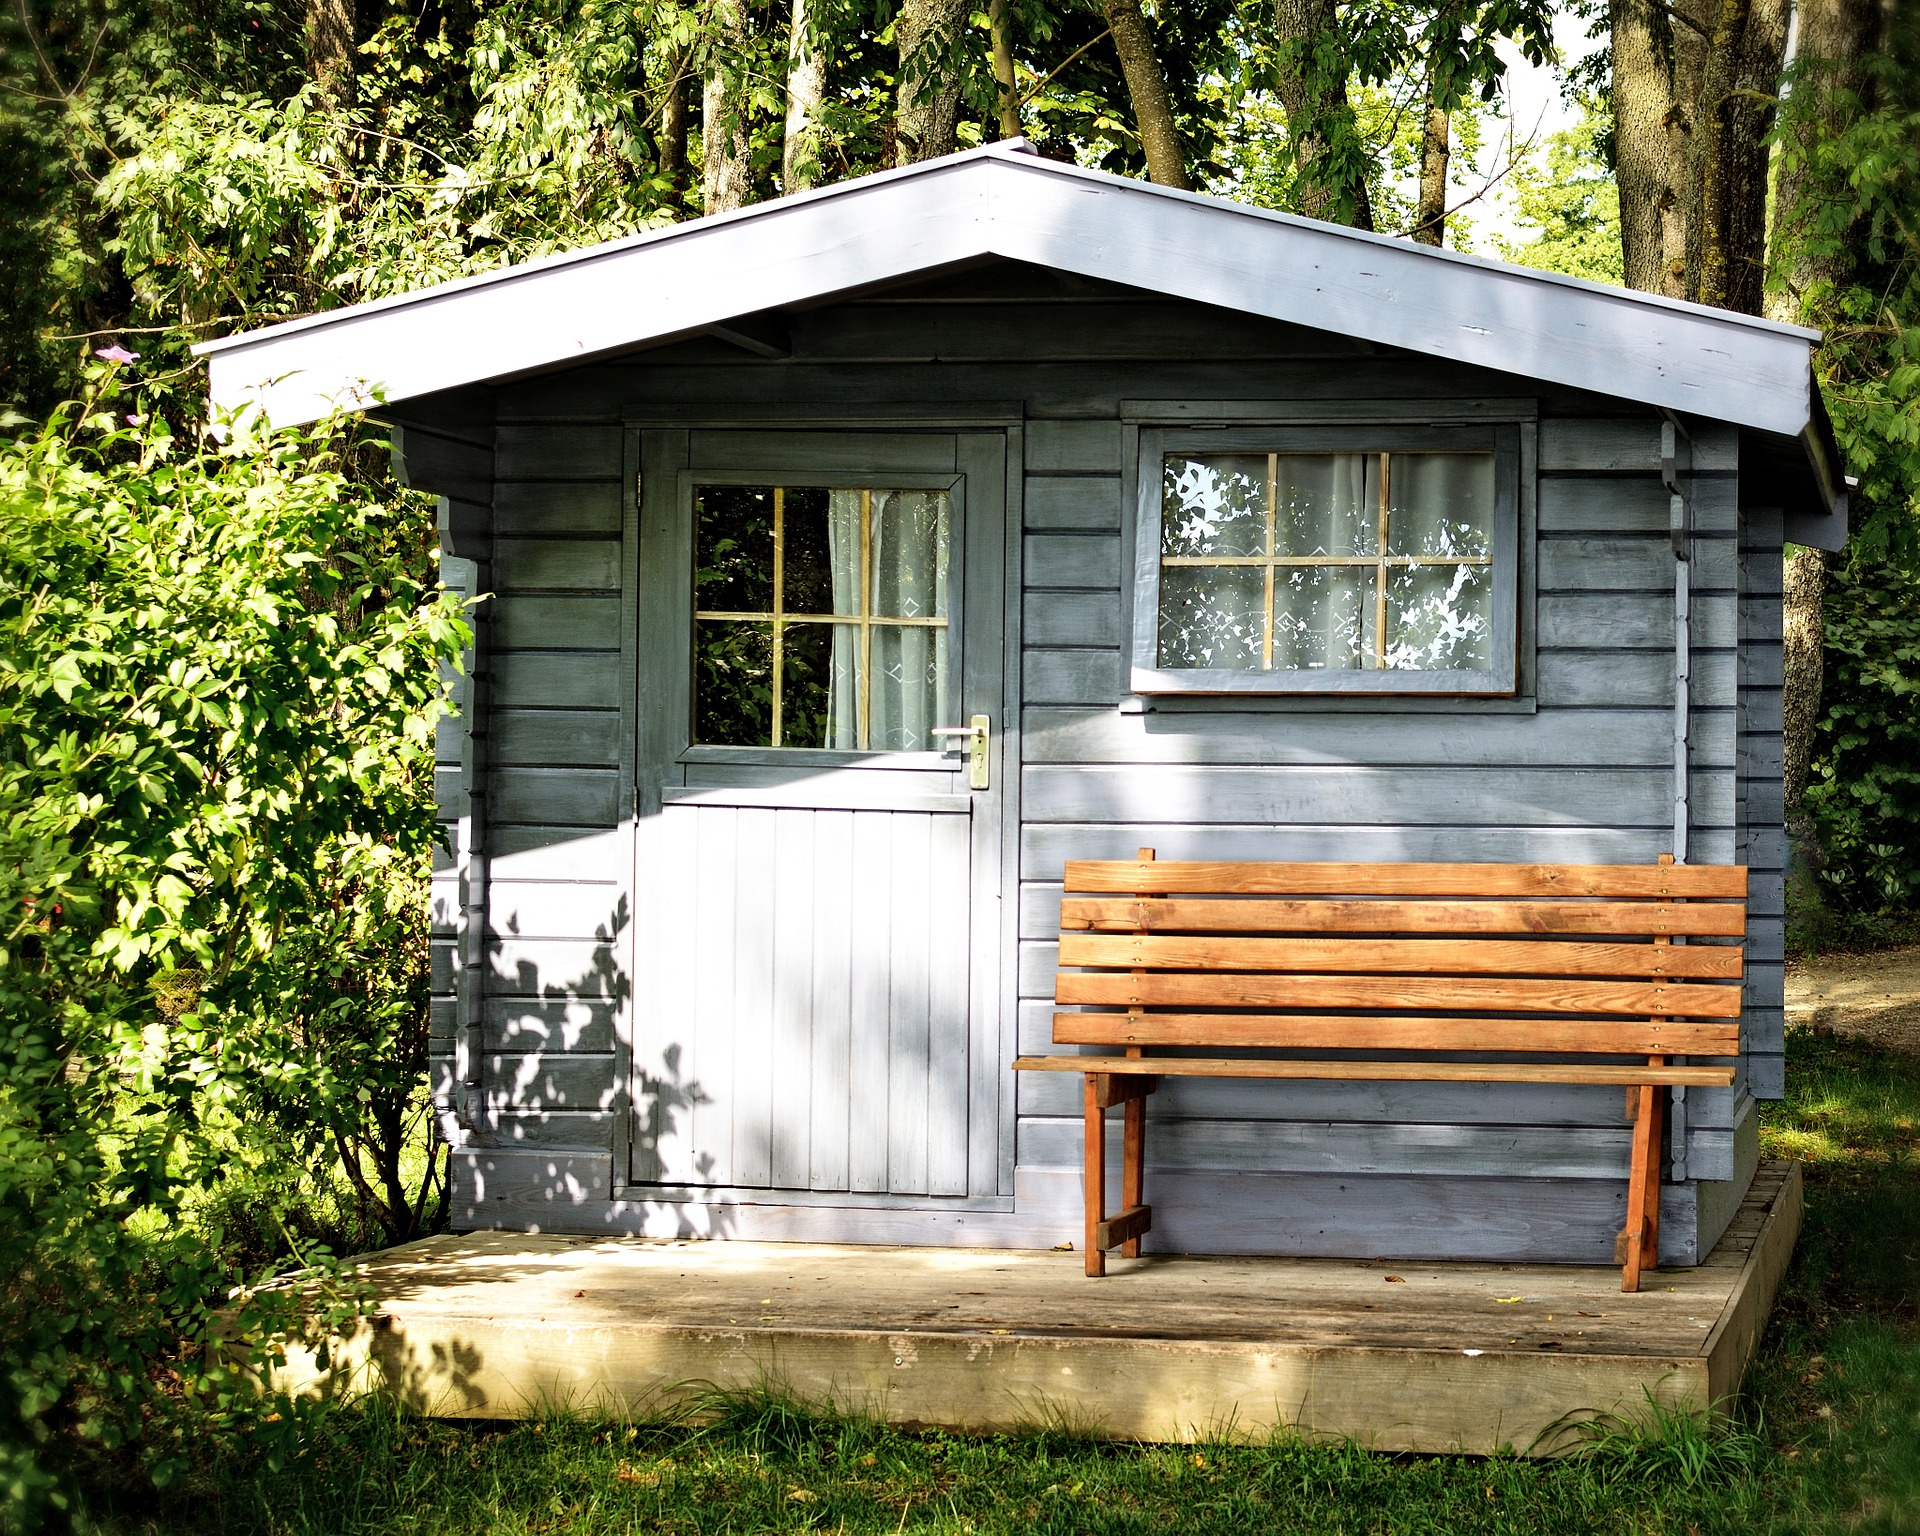 , THE PERFECT GARDEN SHED, Best Garden, Home And DIY Tips